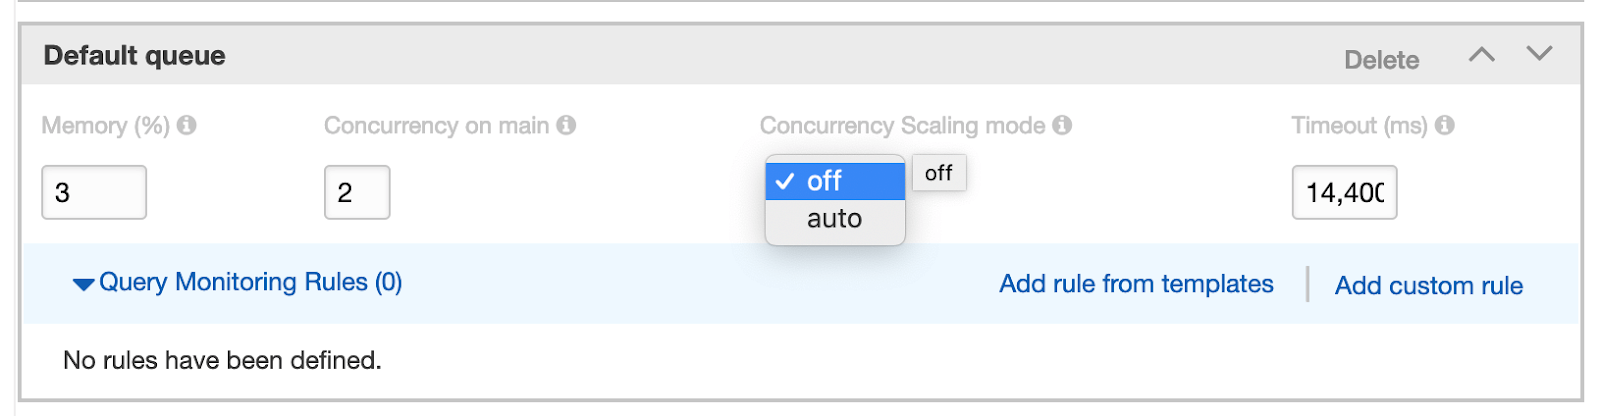 "How to enable concurrency scaling in the AWS Redshift Console ""Workload Management"" section"